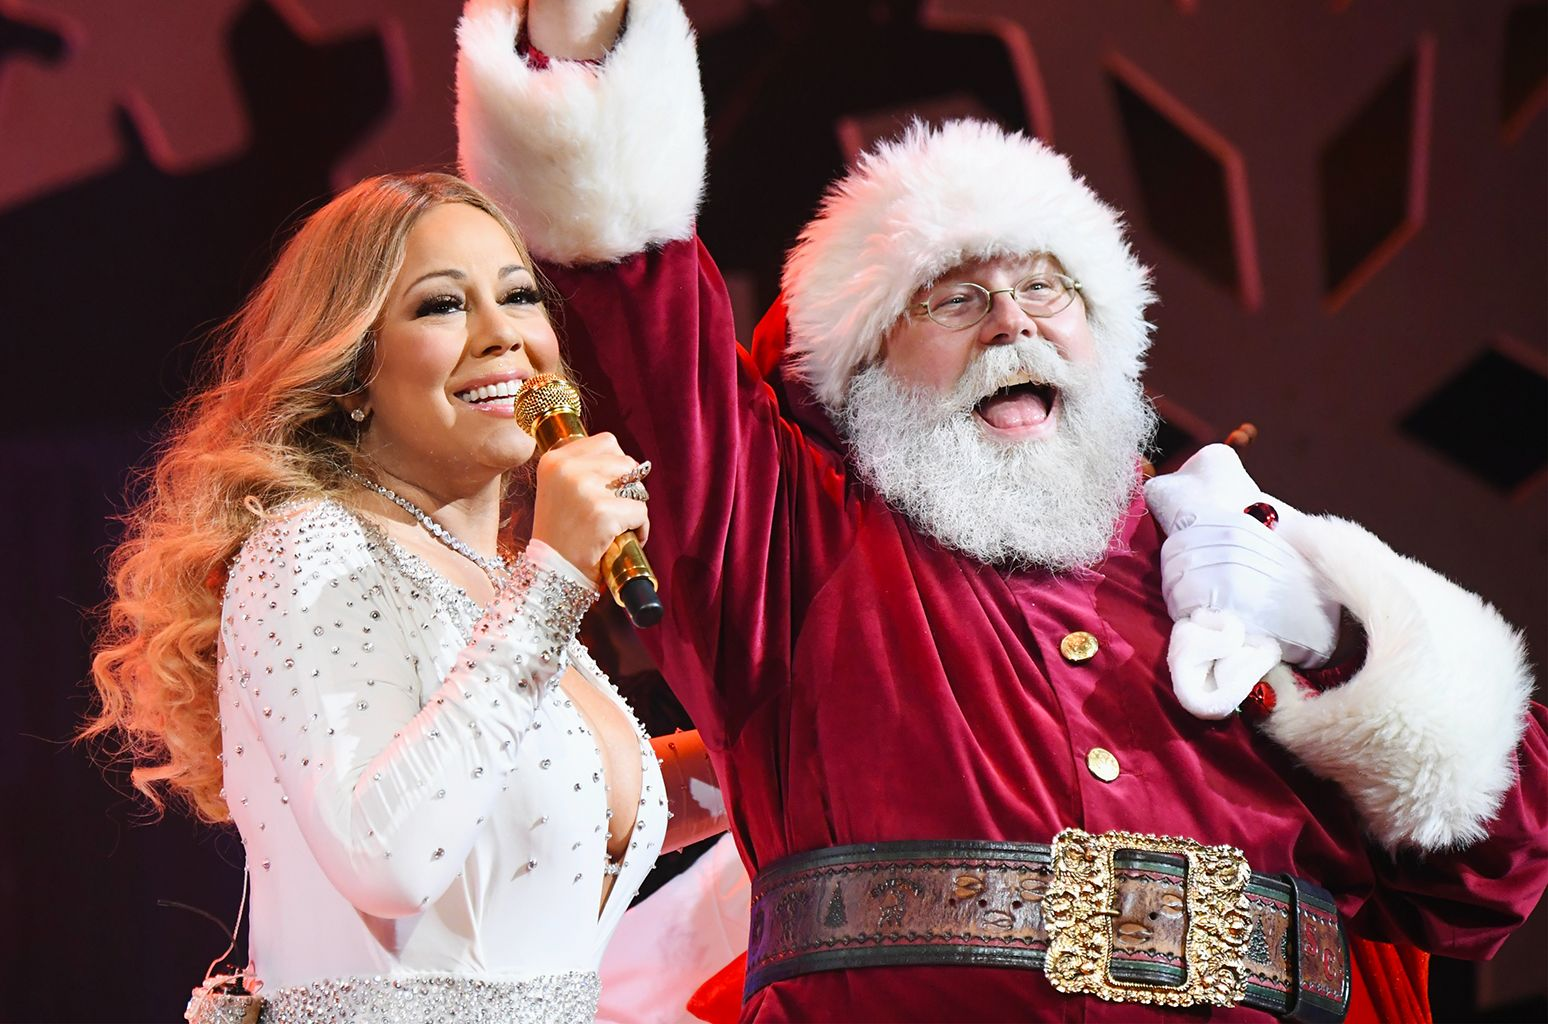 Mariah Carey On Biggest Hot 100 Holiday Hit In 60 Years This Is The Star On Top Of My Christmas Tree Best Christmas Songs Mariah Carey Mariah Carey Christmas